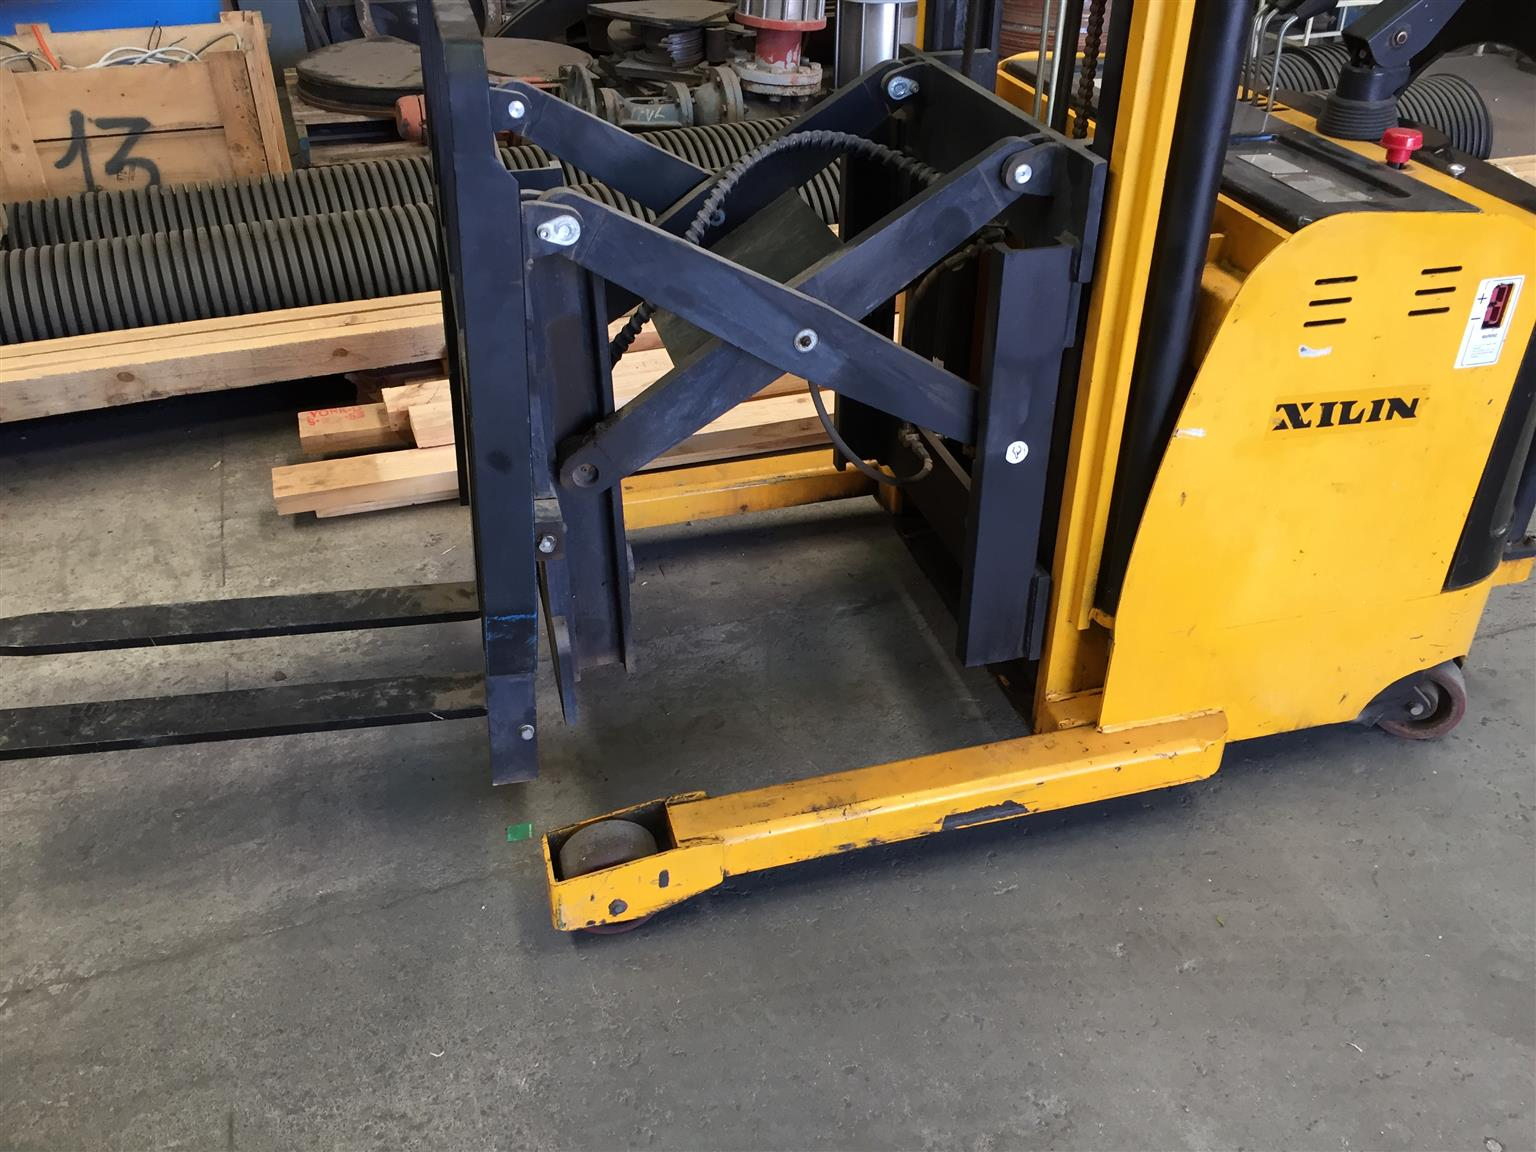 Electrical Forklift Xilin excellent condition